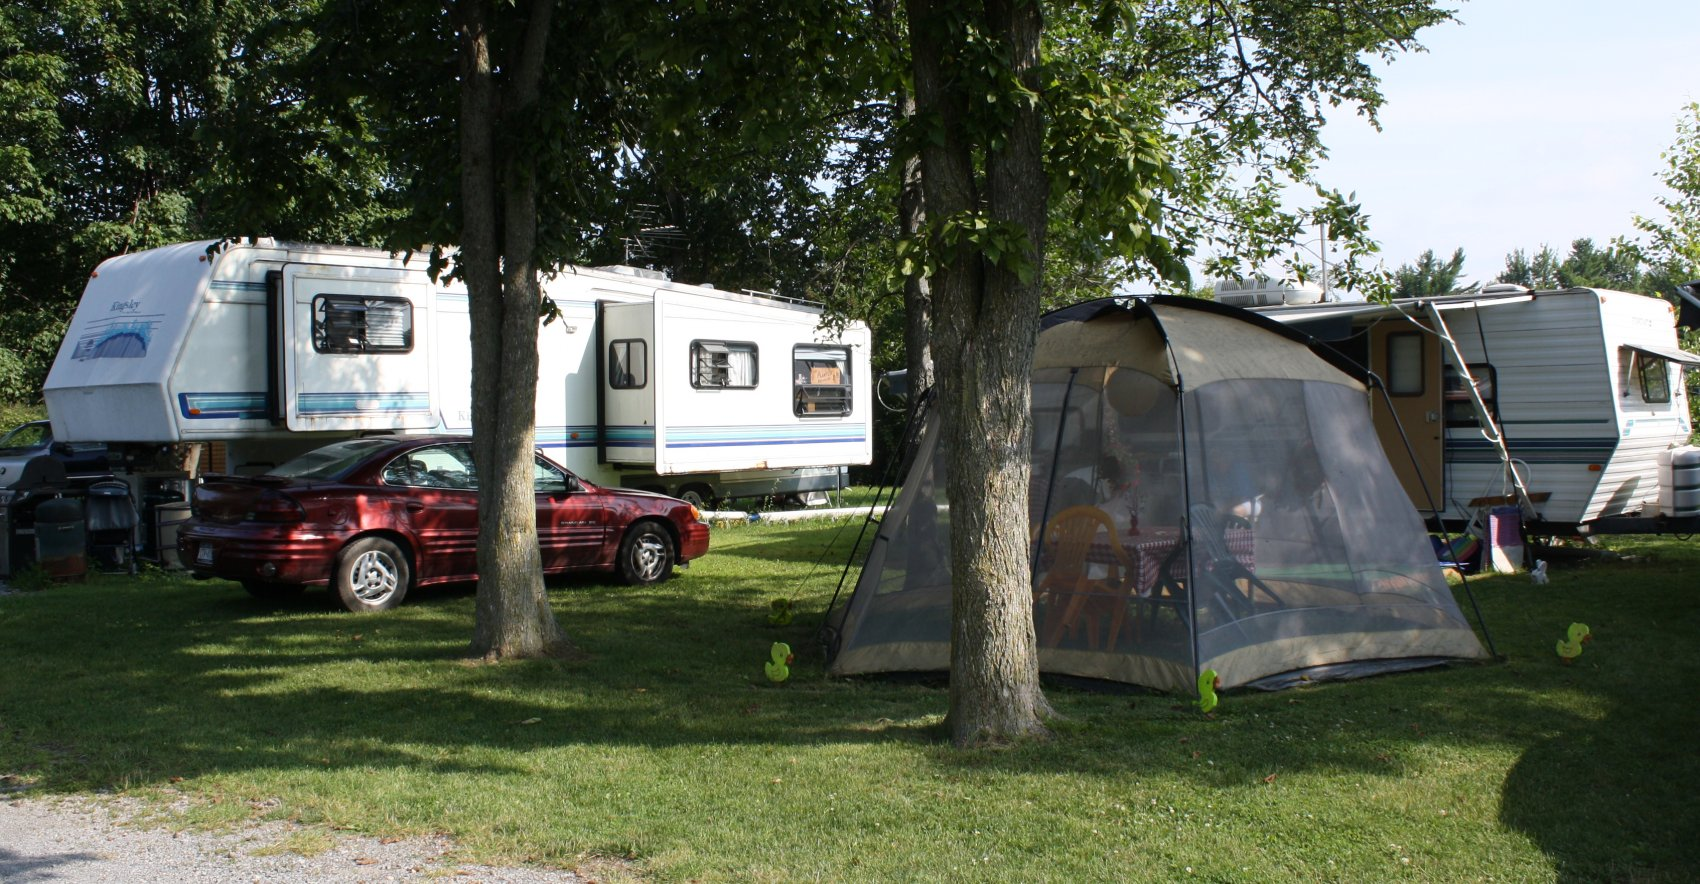 Picture of the 1000 Islands Campground